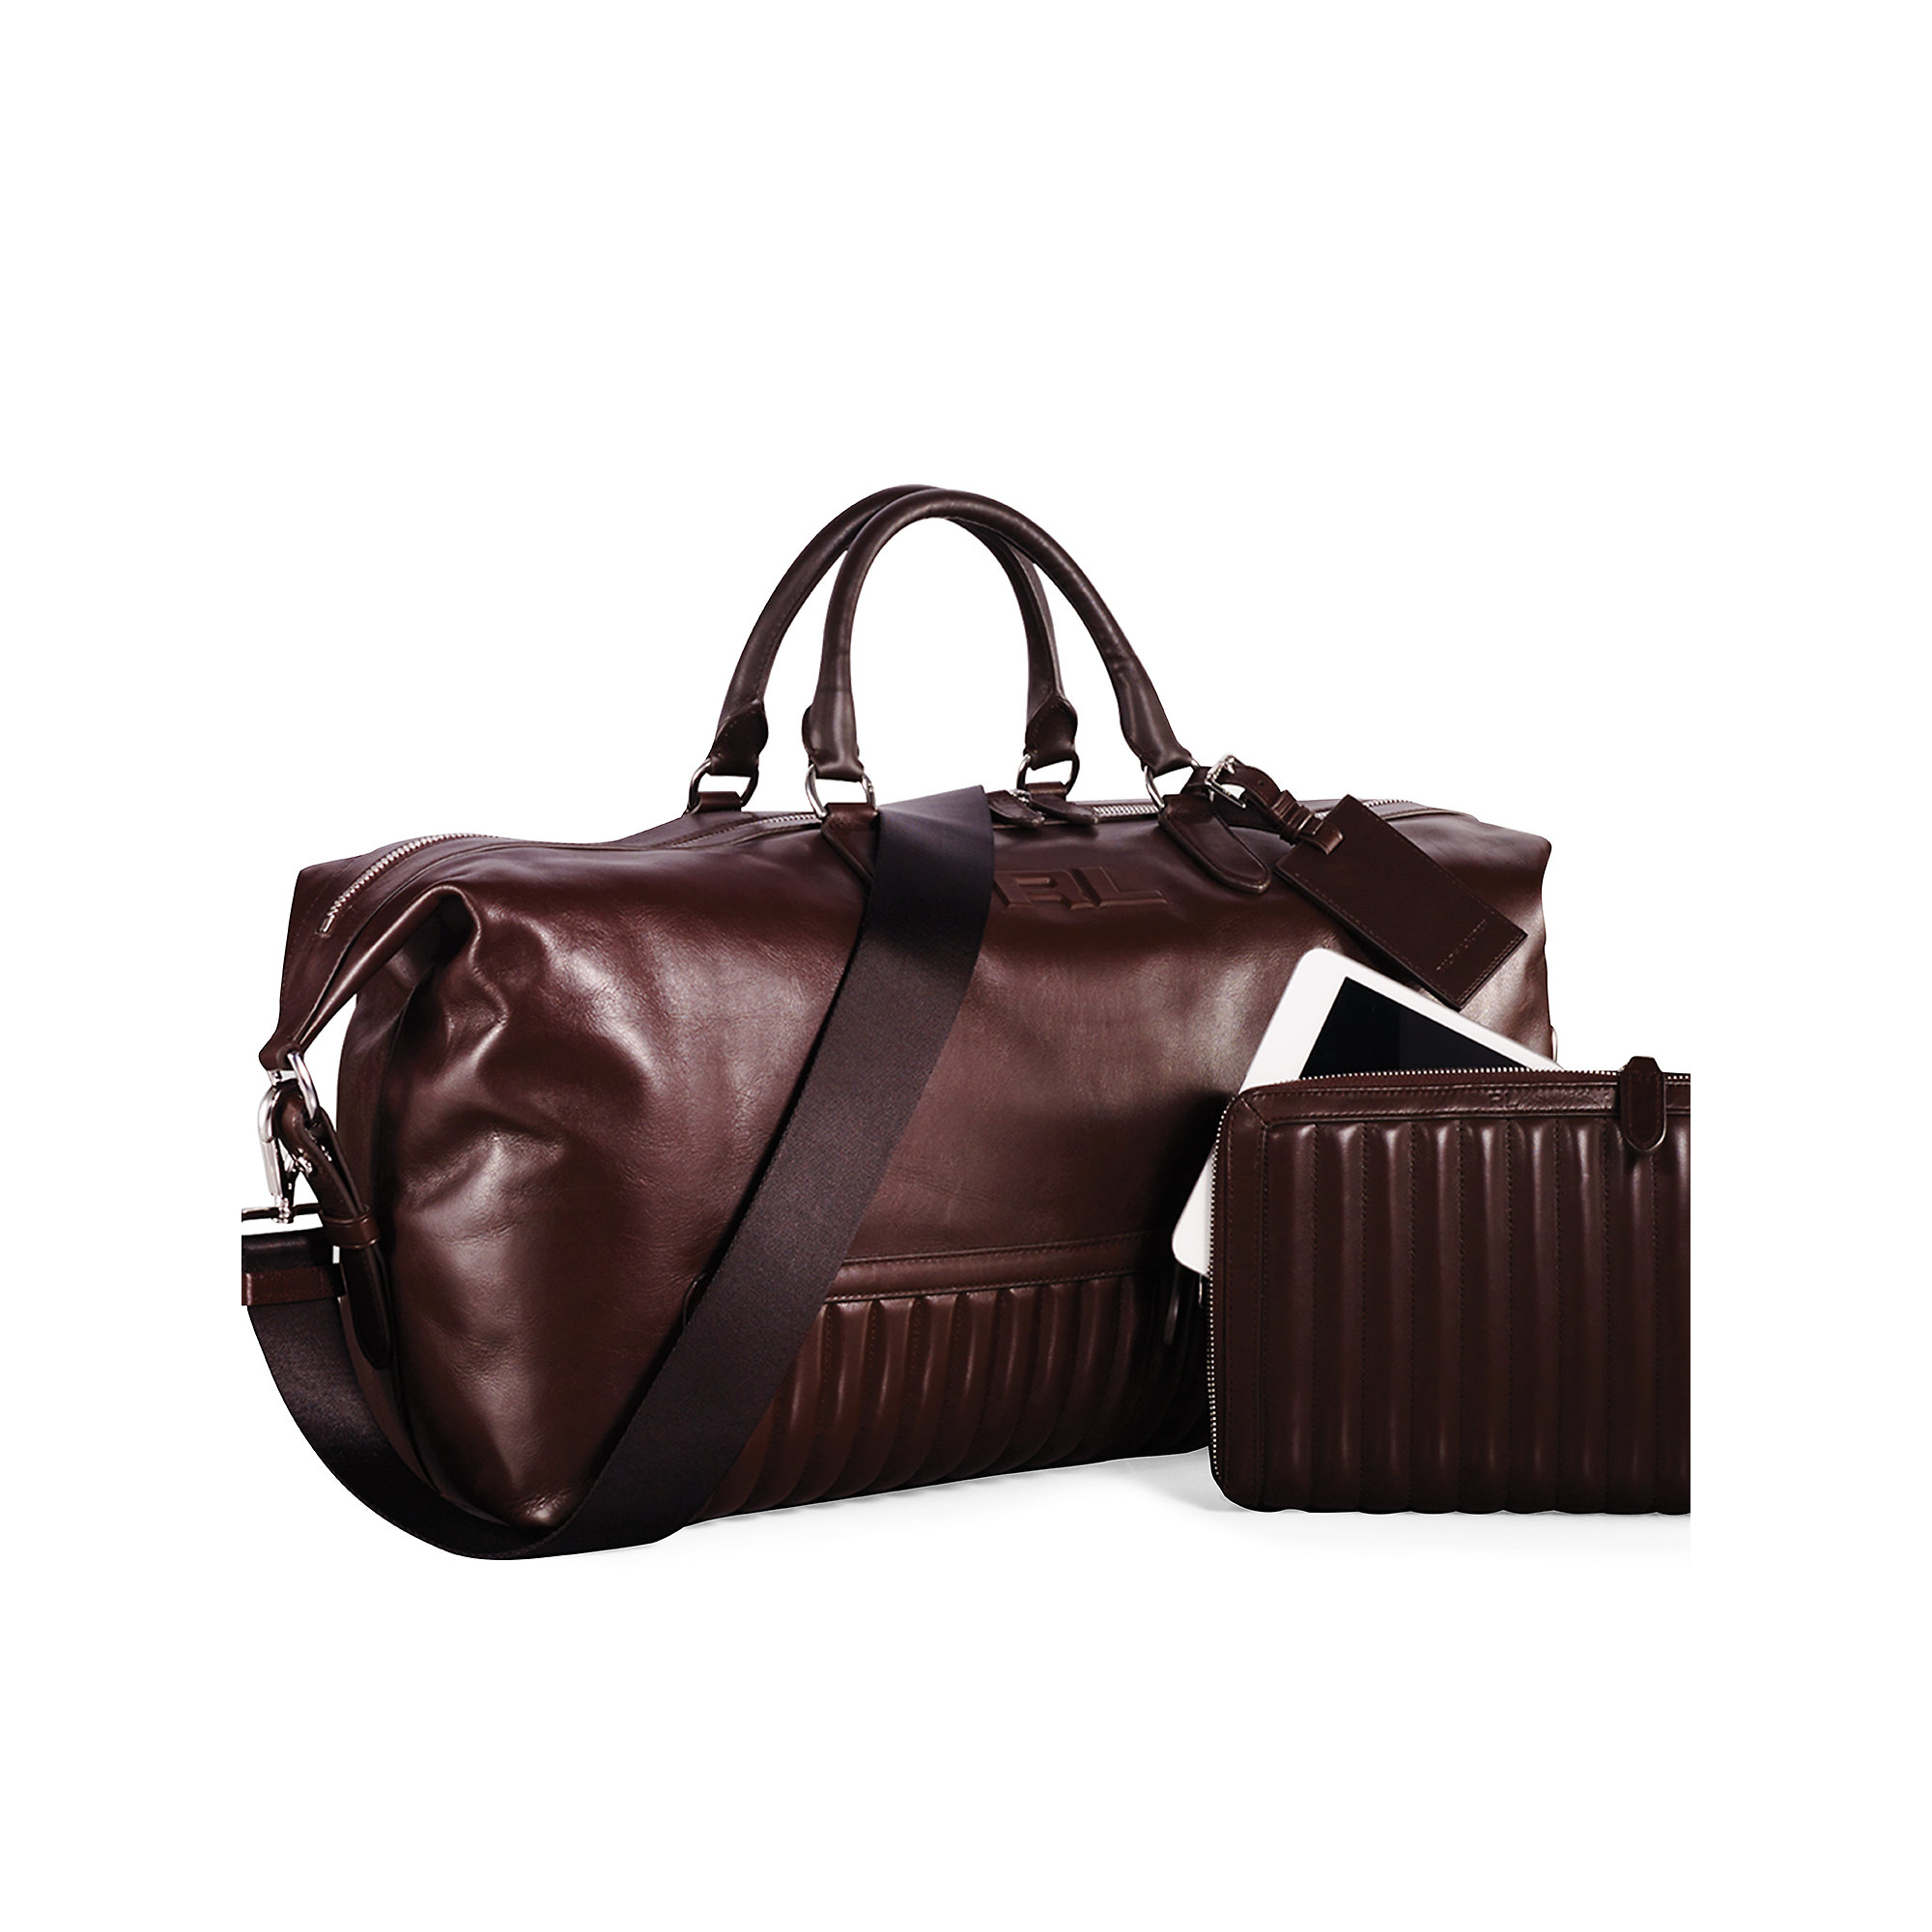 5620365882c7 ... coupon code for lyst ralph lauren quilted leather duffel bag in brown  for men 2a438 1a286 get polo ...